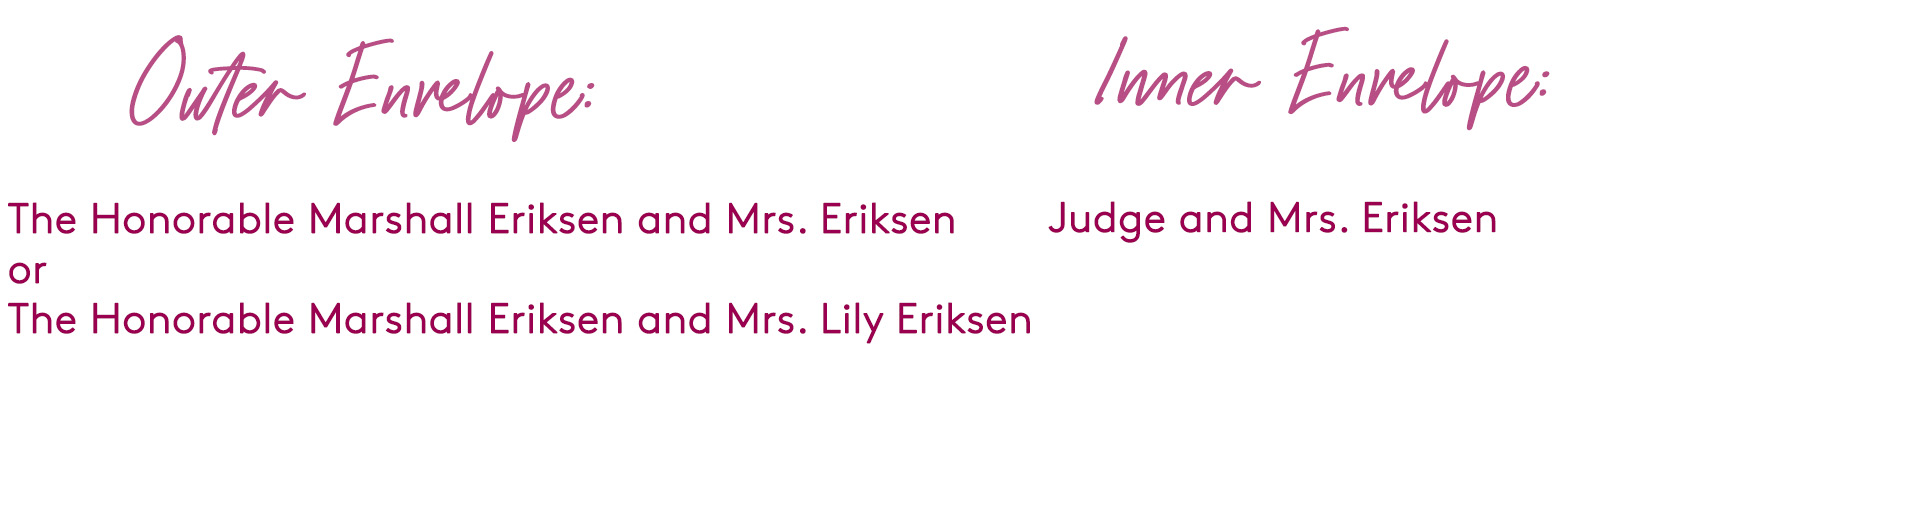 how to address wedding invitation to a judge and spouse